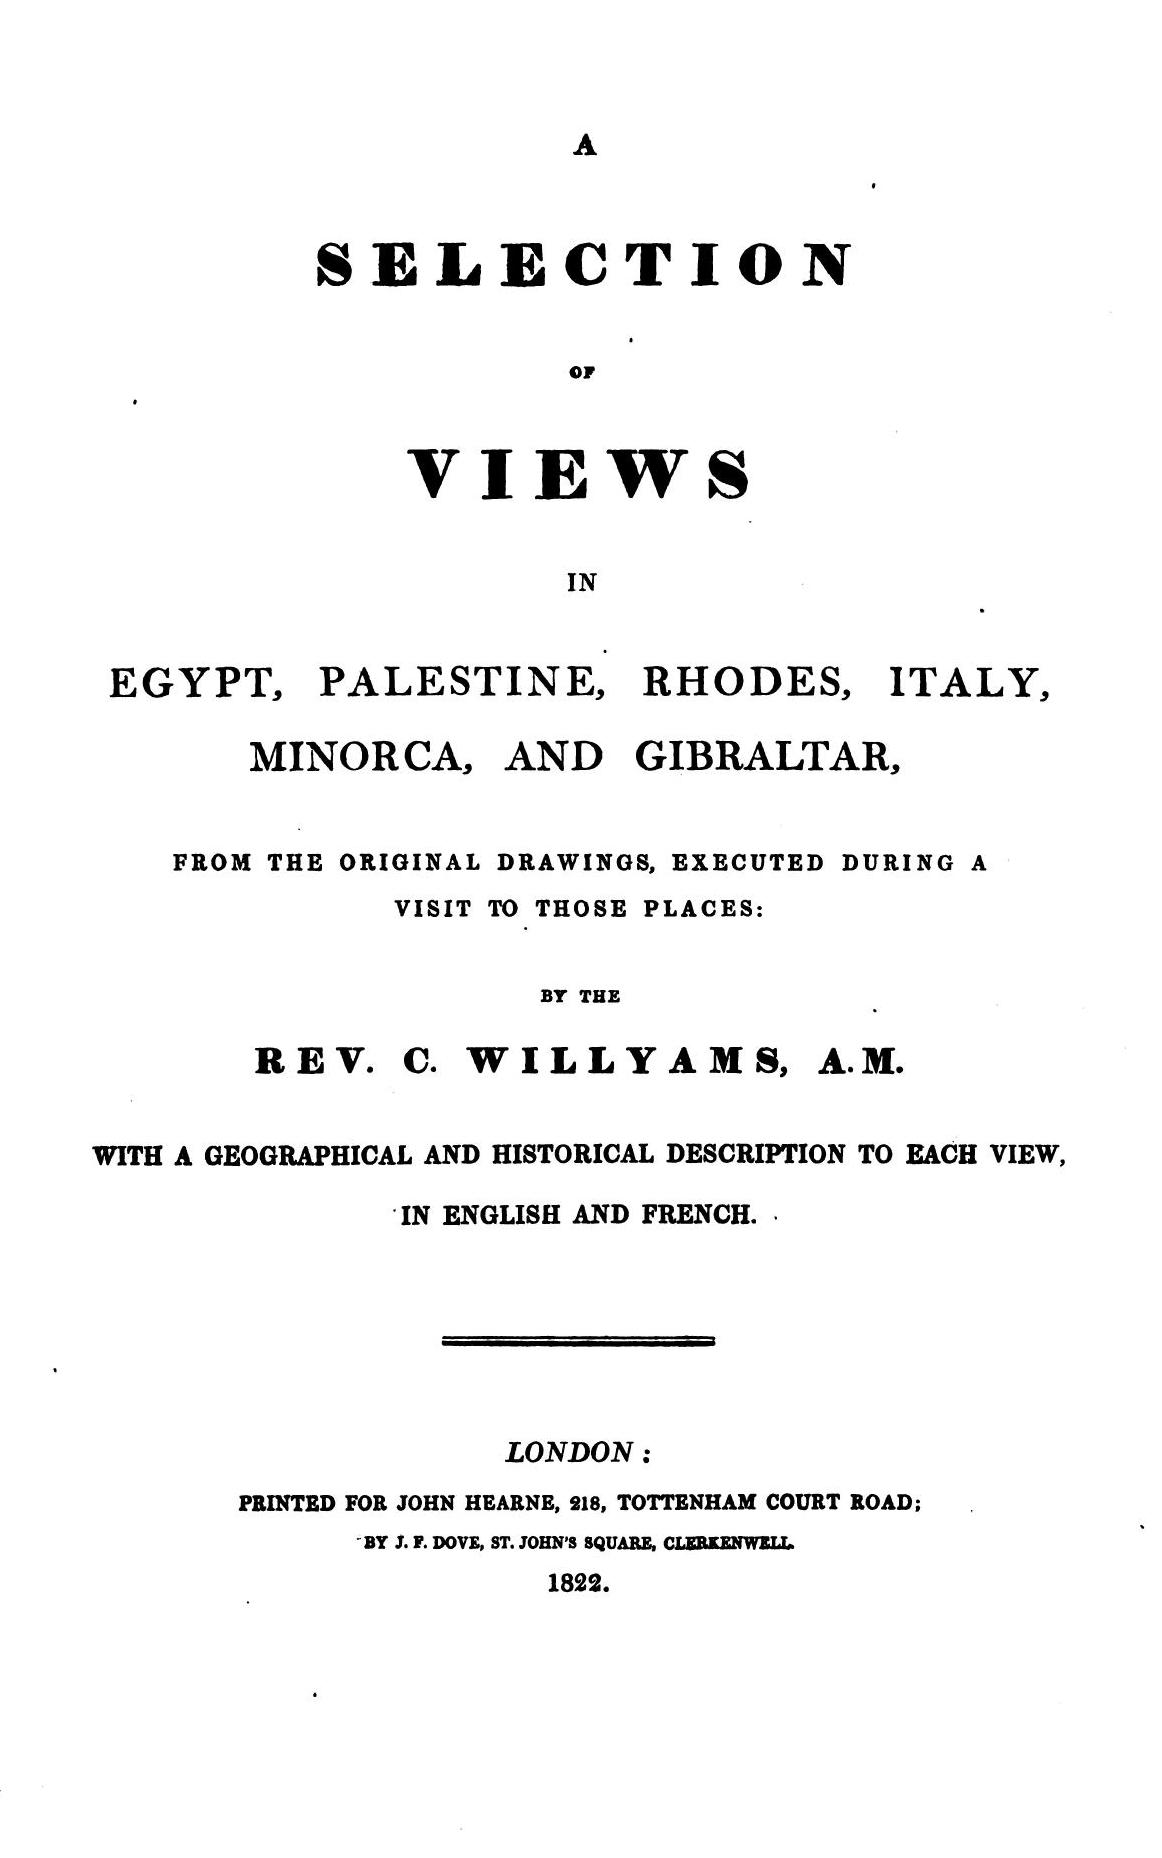 A Selection of Views in Egypt, Palestine, Rhodes, Italy, Minorca, and Gibraltar - Title Page (1822)